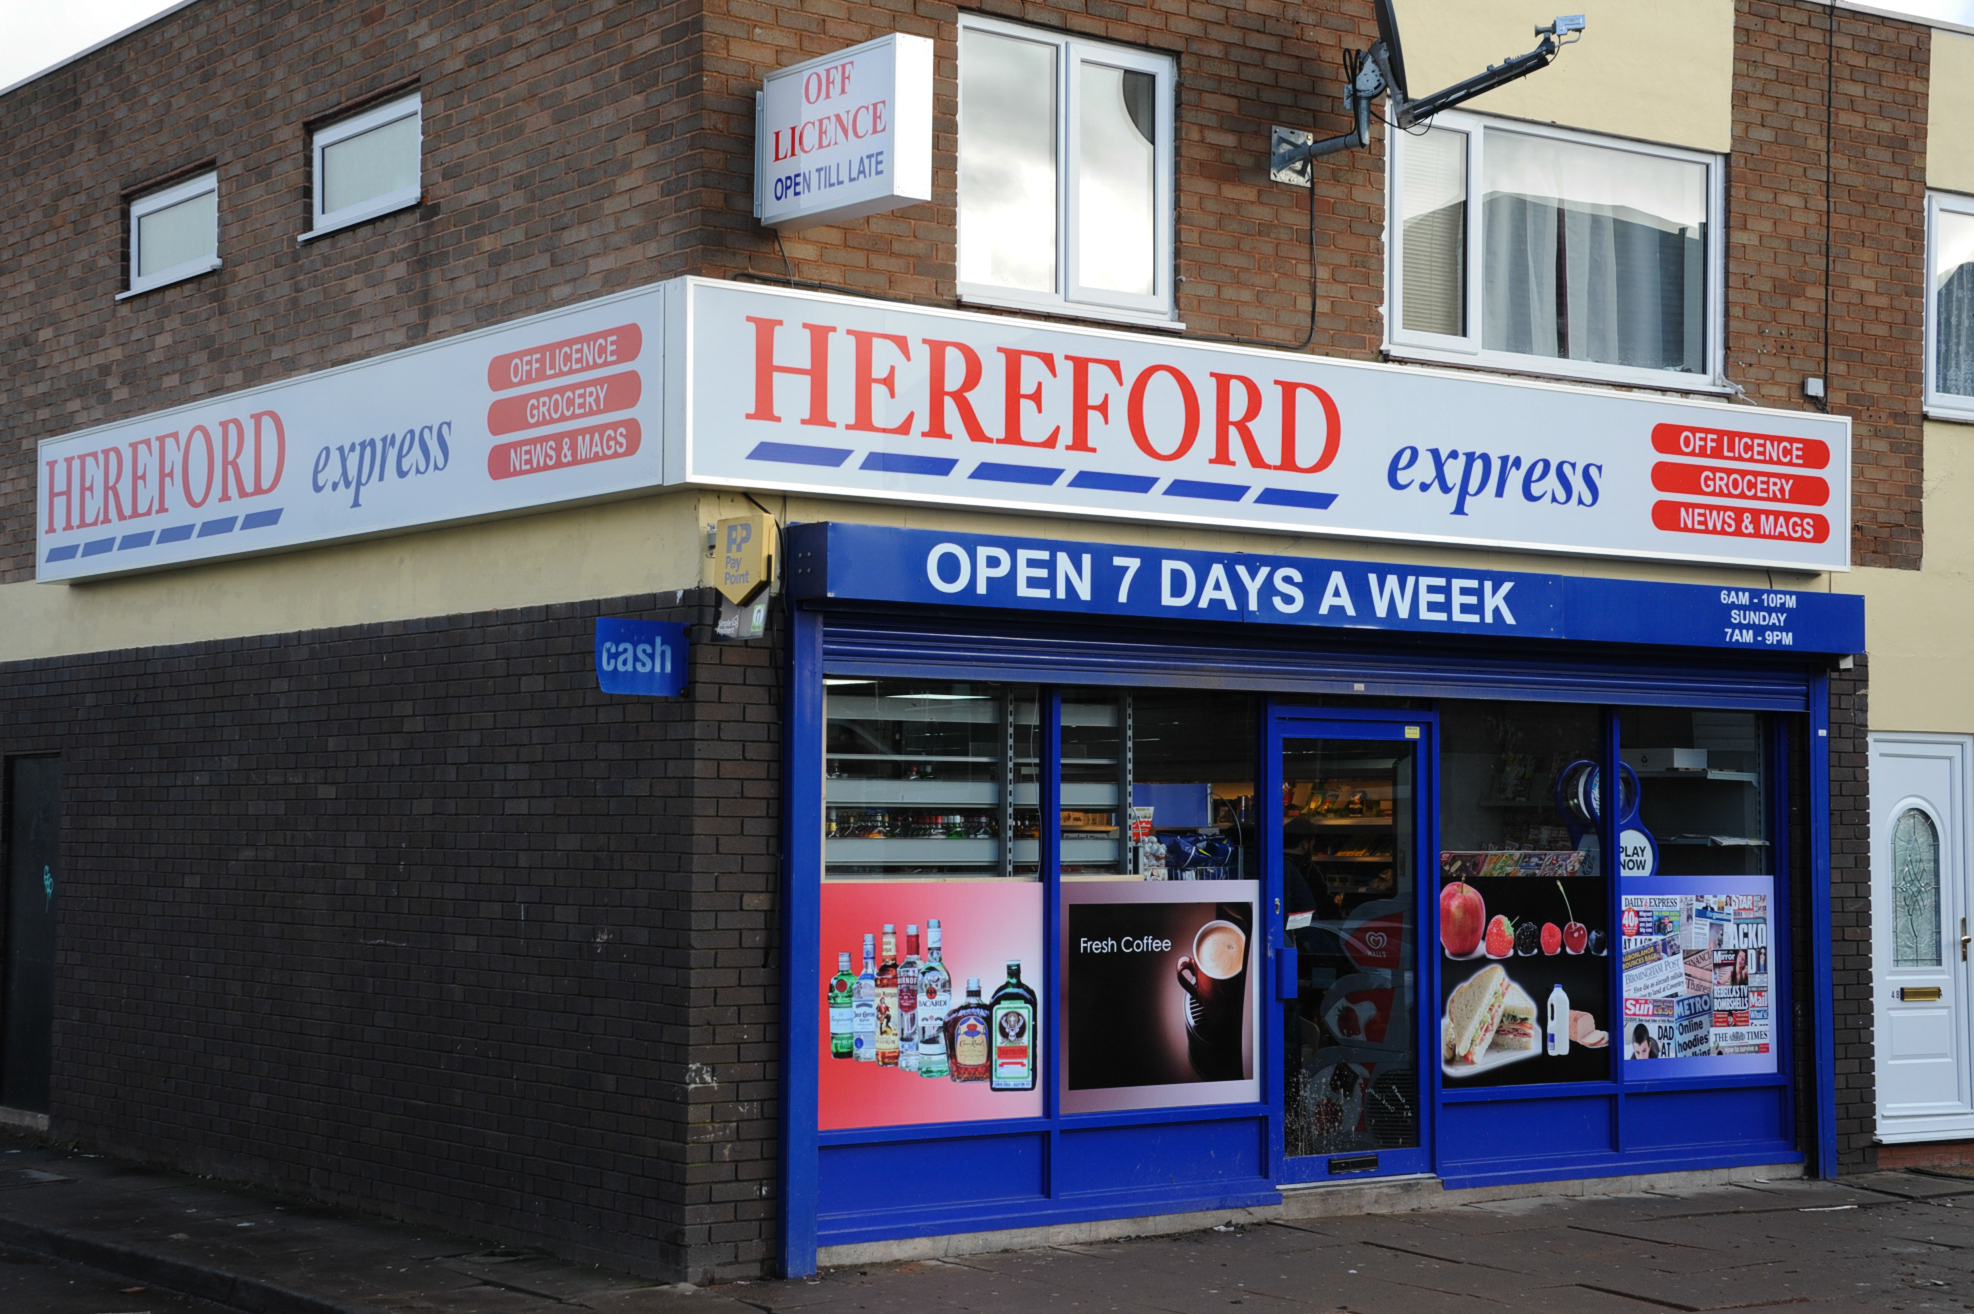 The Hereford Express store on Folly Lane in Tupsley